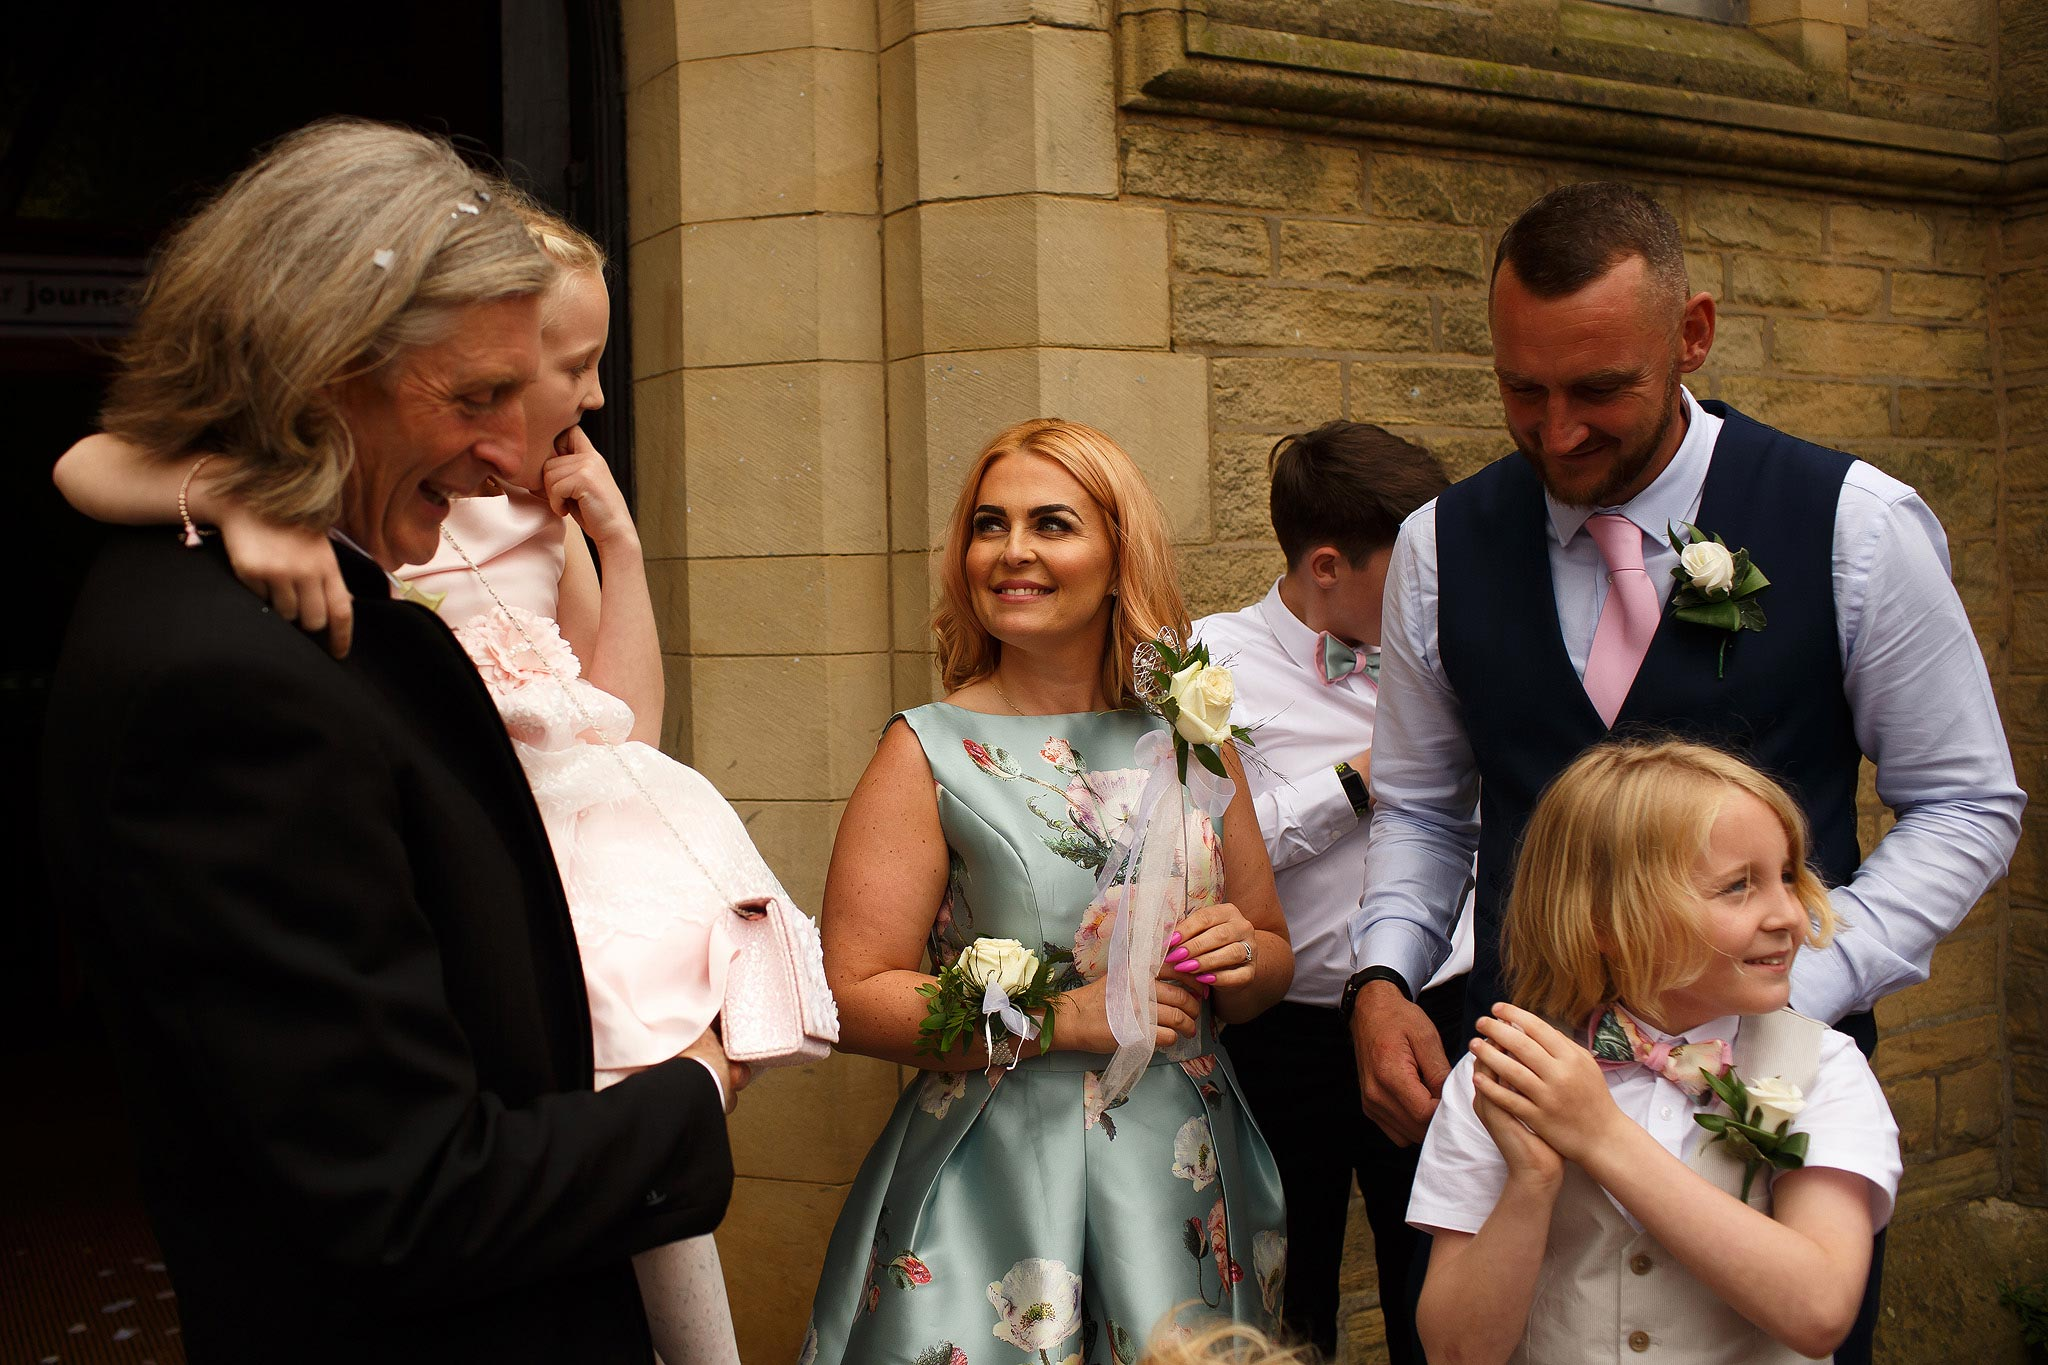 Wedding guests laughing outside church in Lancashire